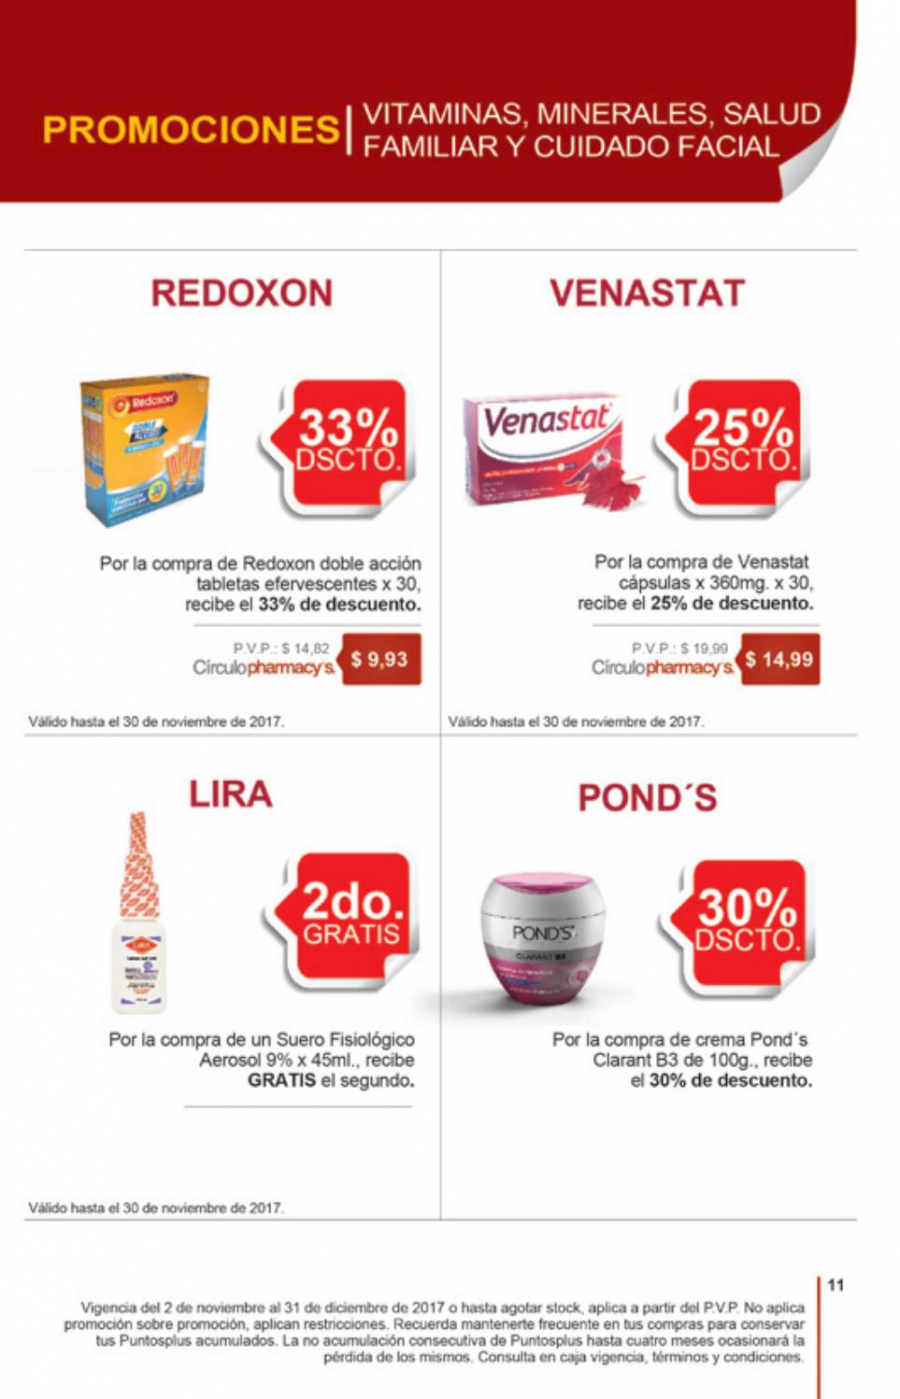 Folleto actual Pharmacy's - 2.11.2017 - 31.12.2017 - Ventas - cápsula, crema, pond's, cápsulas, aerosol, tabletas. Página 10.